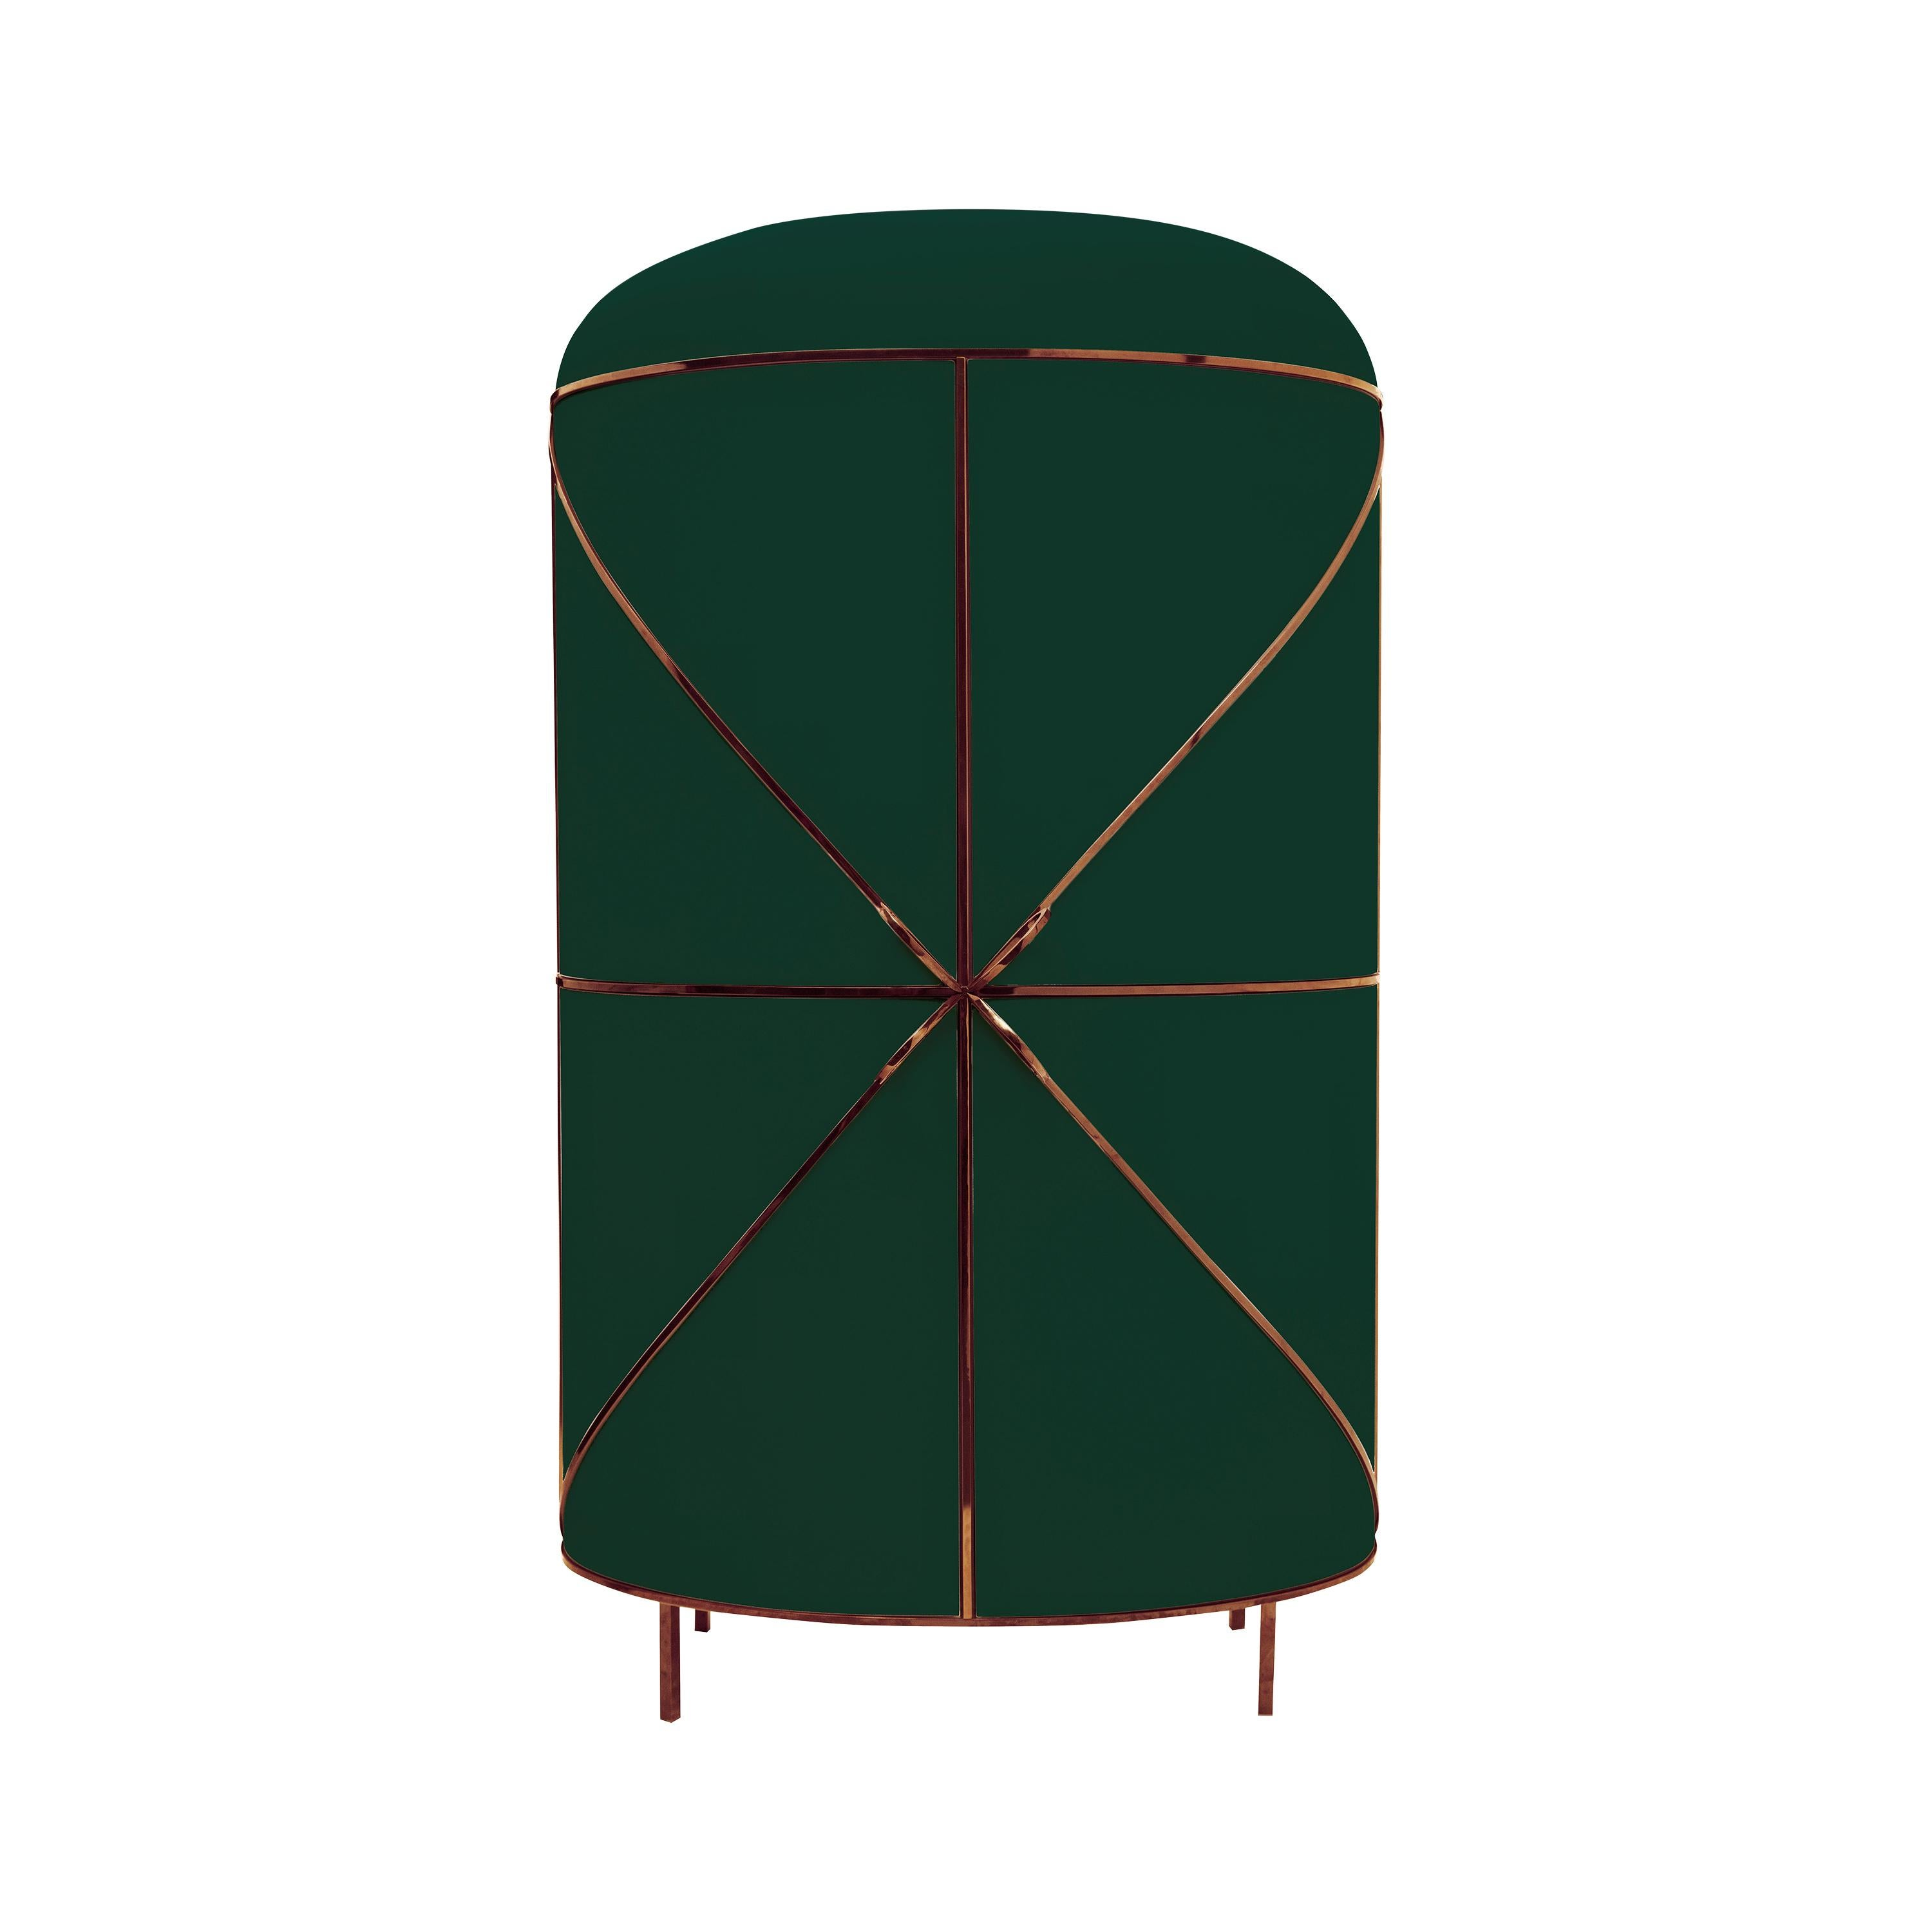 88 Secrets Green Bar Cabinet with Rose Gold Trims by Nika Zupanc